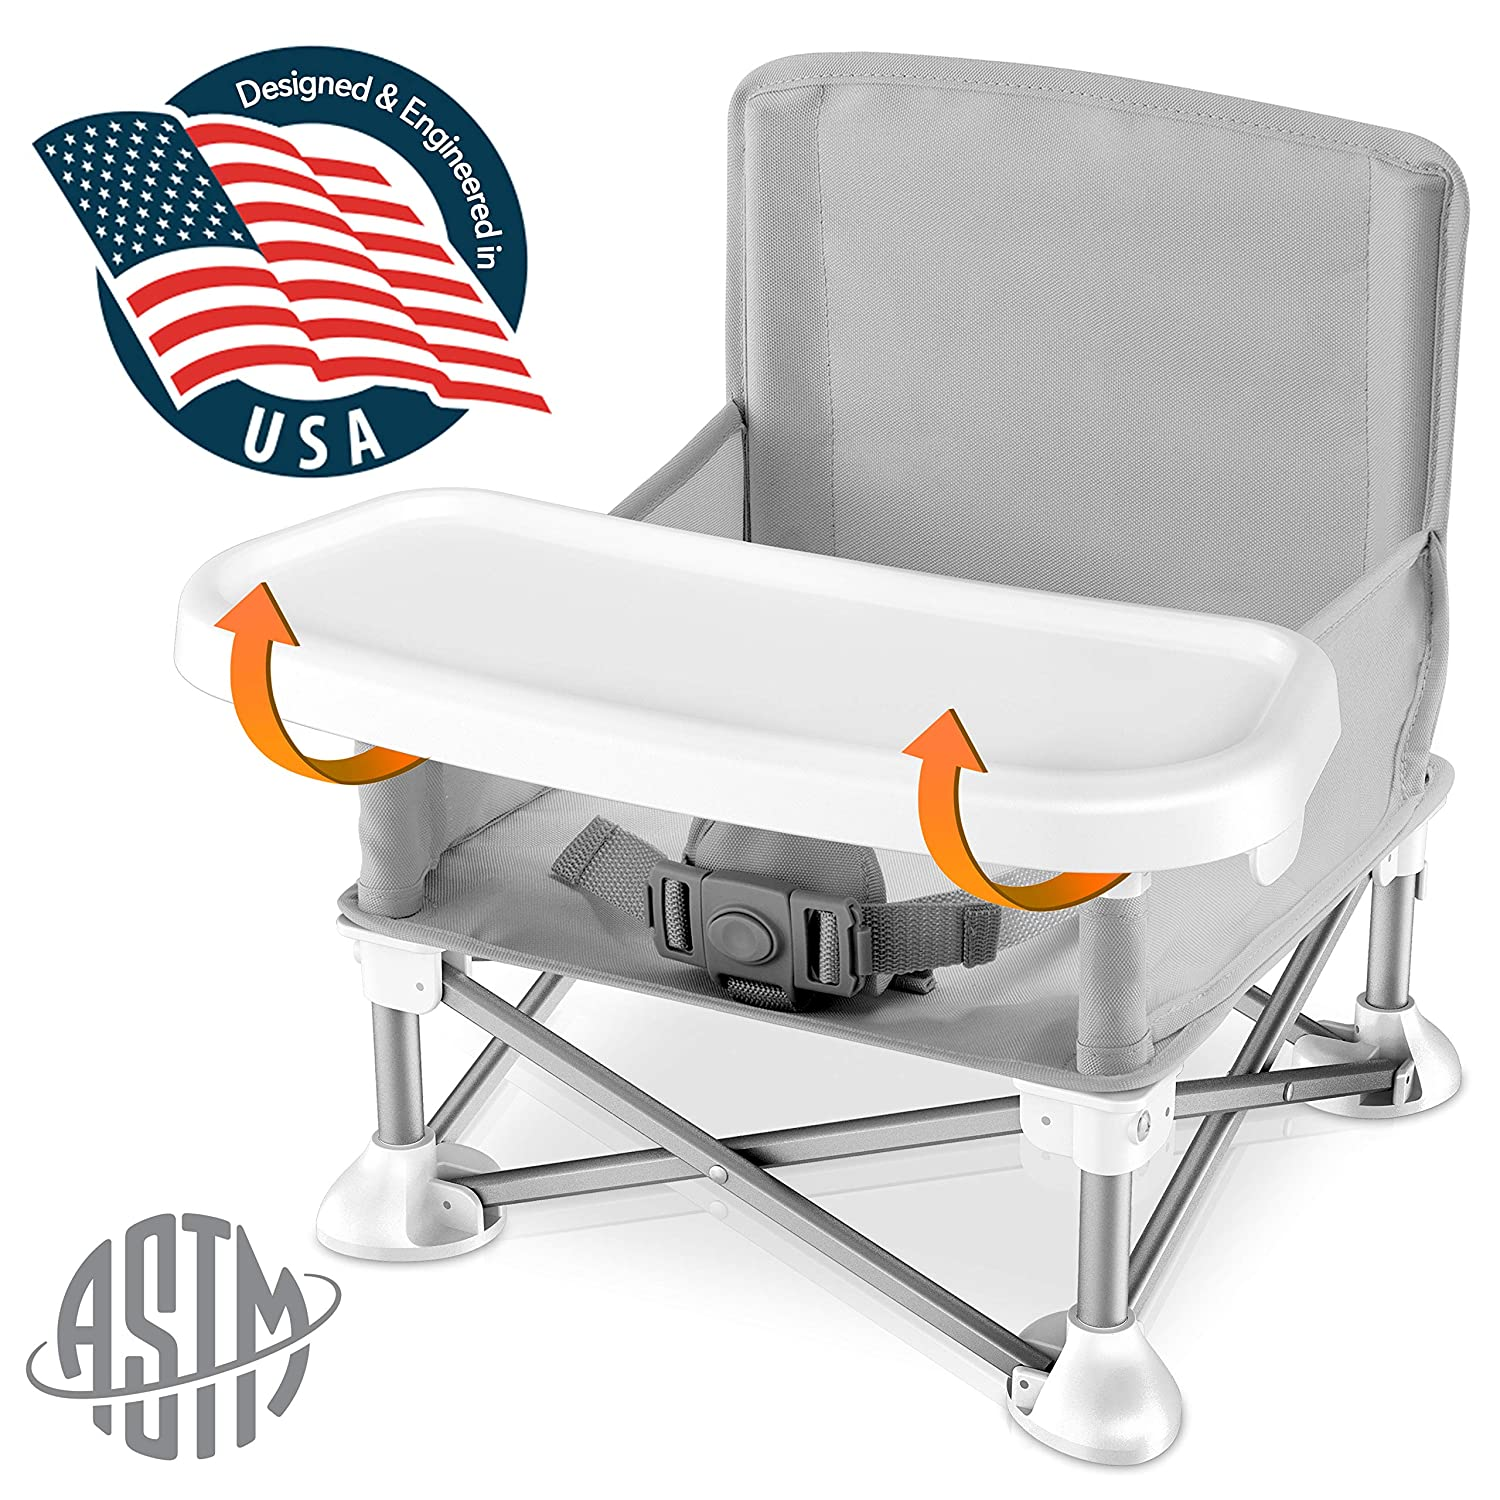 Baby Seat Booster High Chair - Portable Toddler Booster Seat -Lightweight Easy Travel Pop-n-Sit Folding Booster Feeding Chair w/ Aluminum frame, Safety Belt for Camping/Beach/Lawn WeatherproofSLBS66